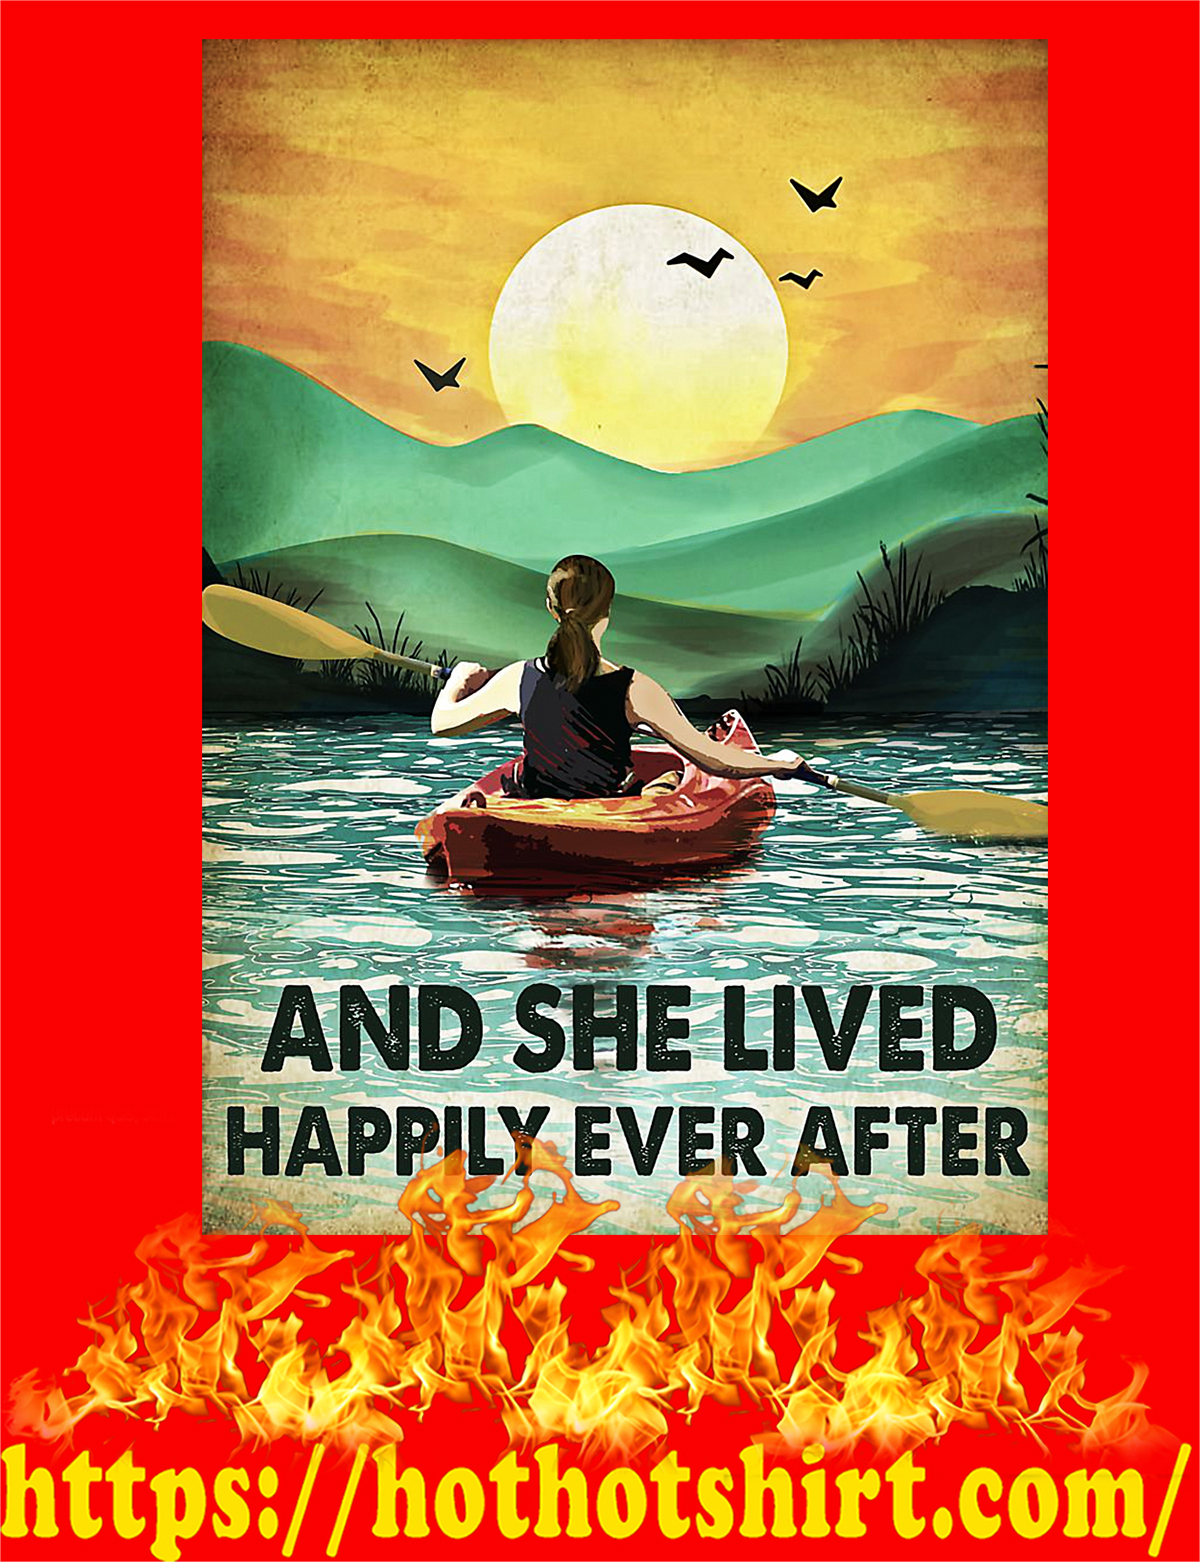 Rowing And she lived happily ever after poster - A3